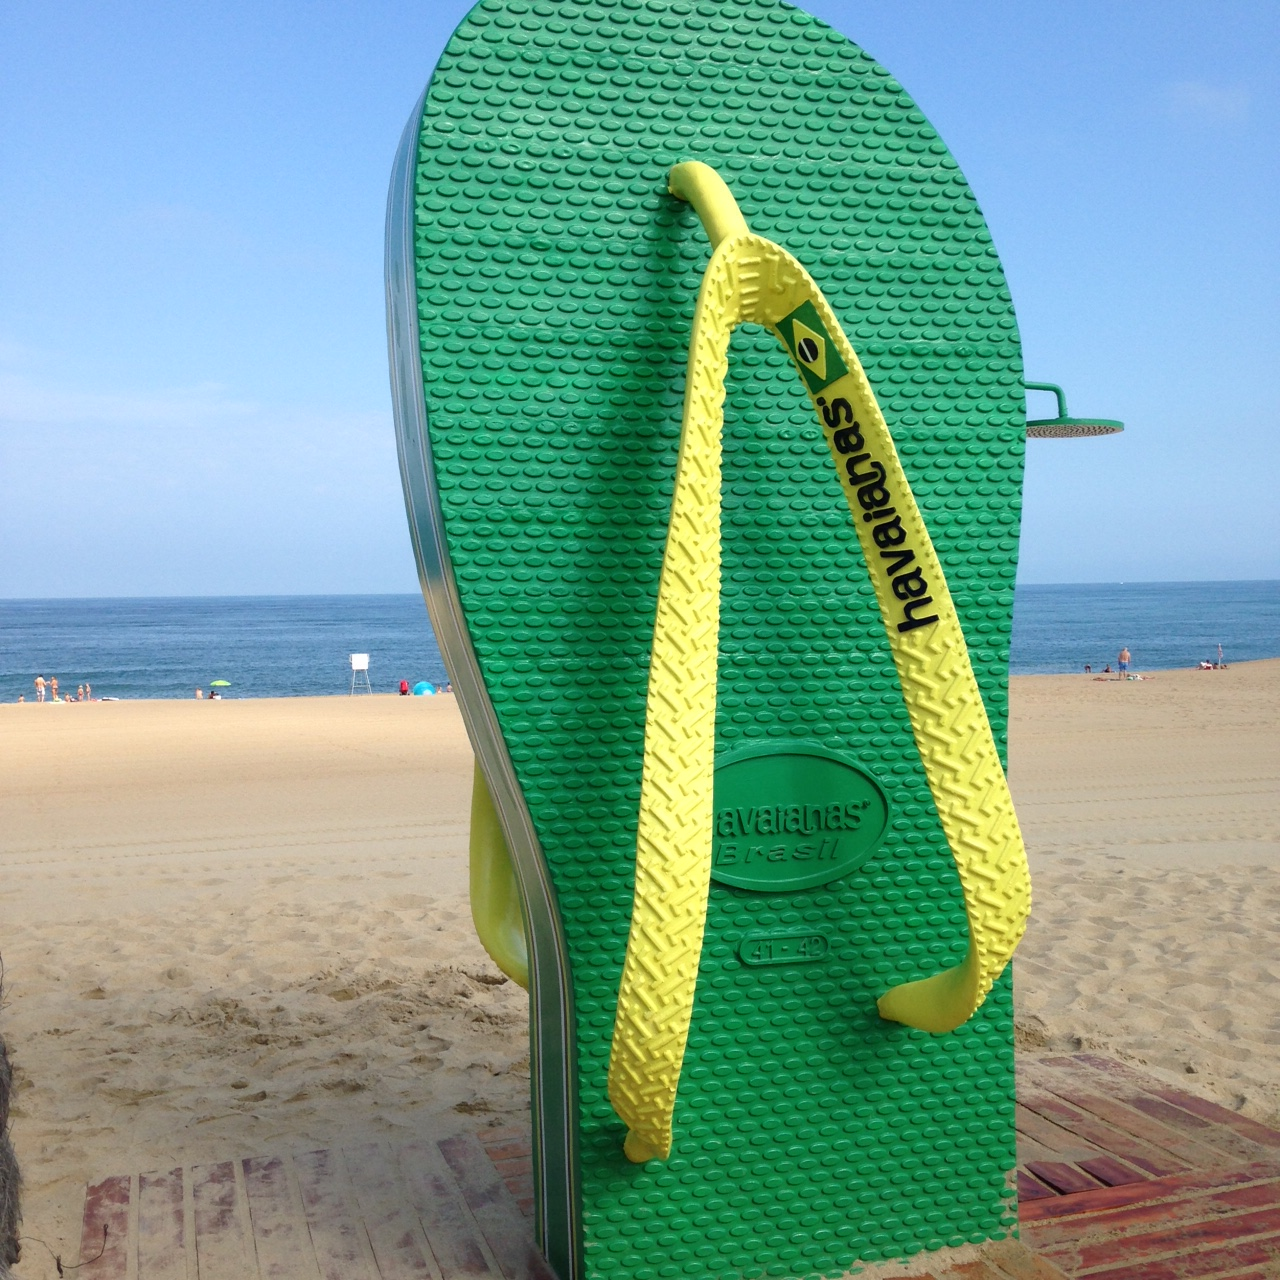 b4afb6685e202e ... flip flop shower clearance prices 8ff1c 59473  Havaianas Beach Showers  exquisite style 9a3aa 27ba3 ...